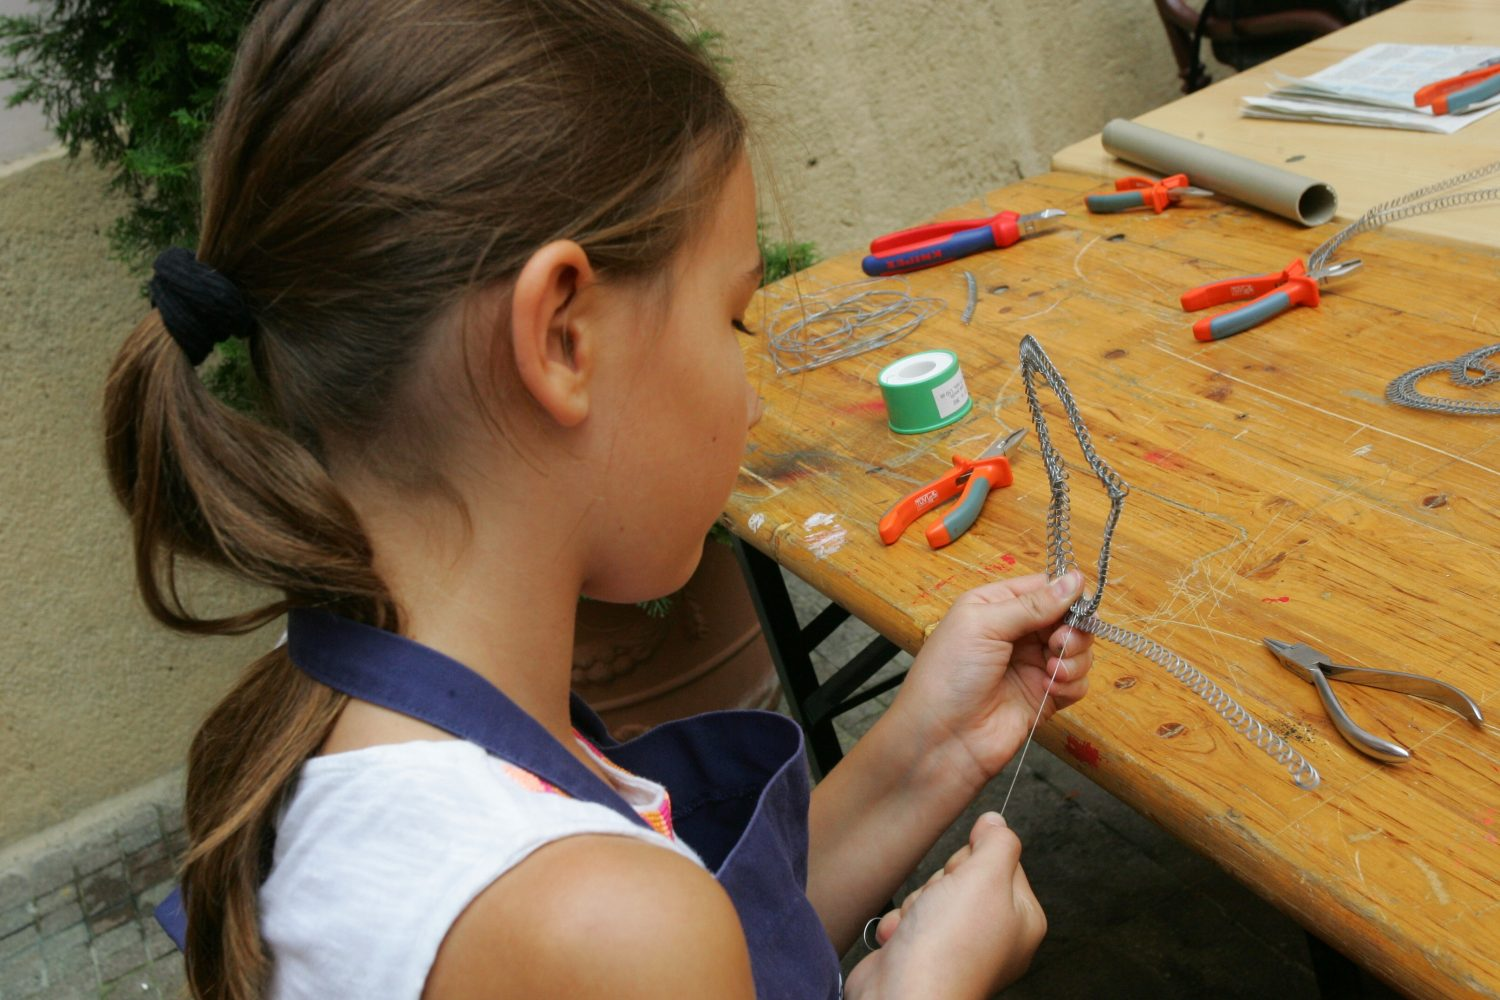 School of Crafts is always characterized by a great interest (photo by Centre For Folk Art Production)